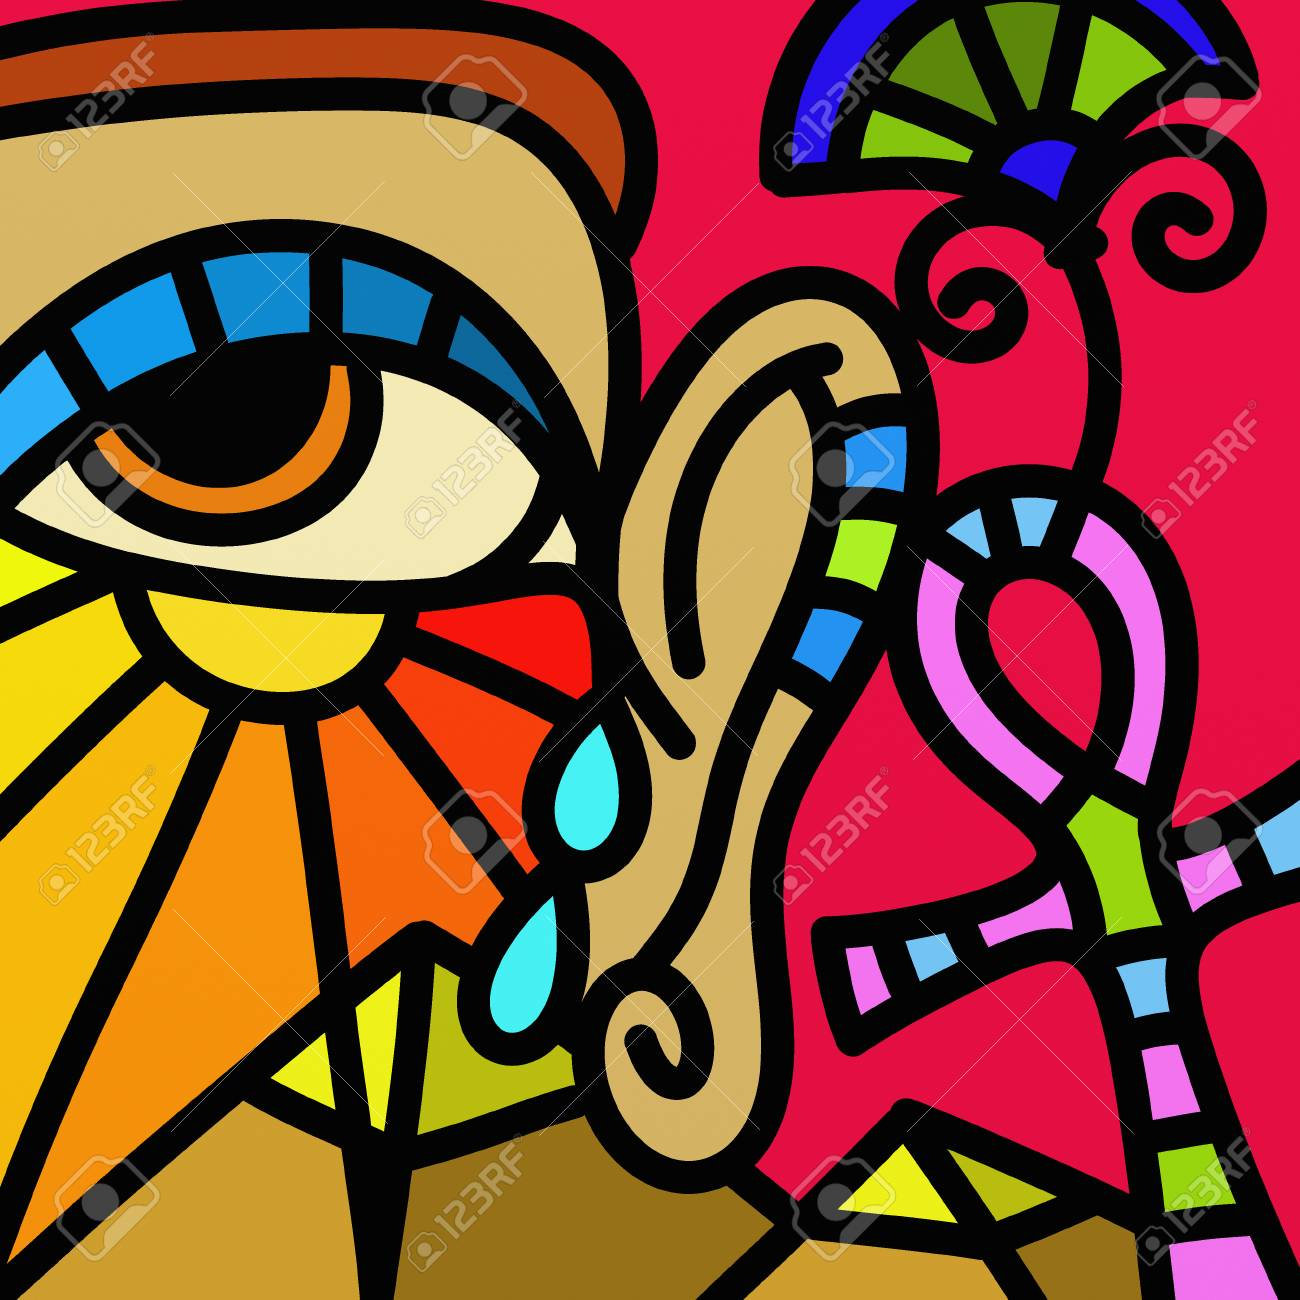 Eye And Colorful Abstract Design With Egyptian Symbols Stock Photo